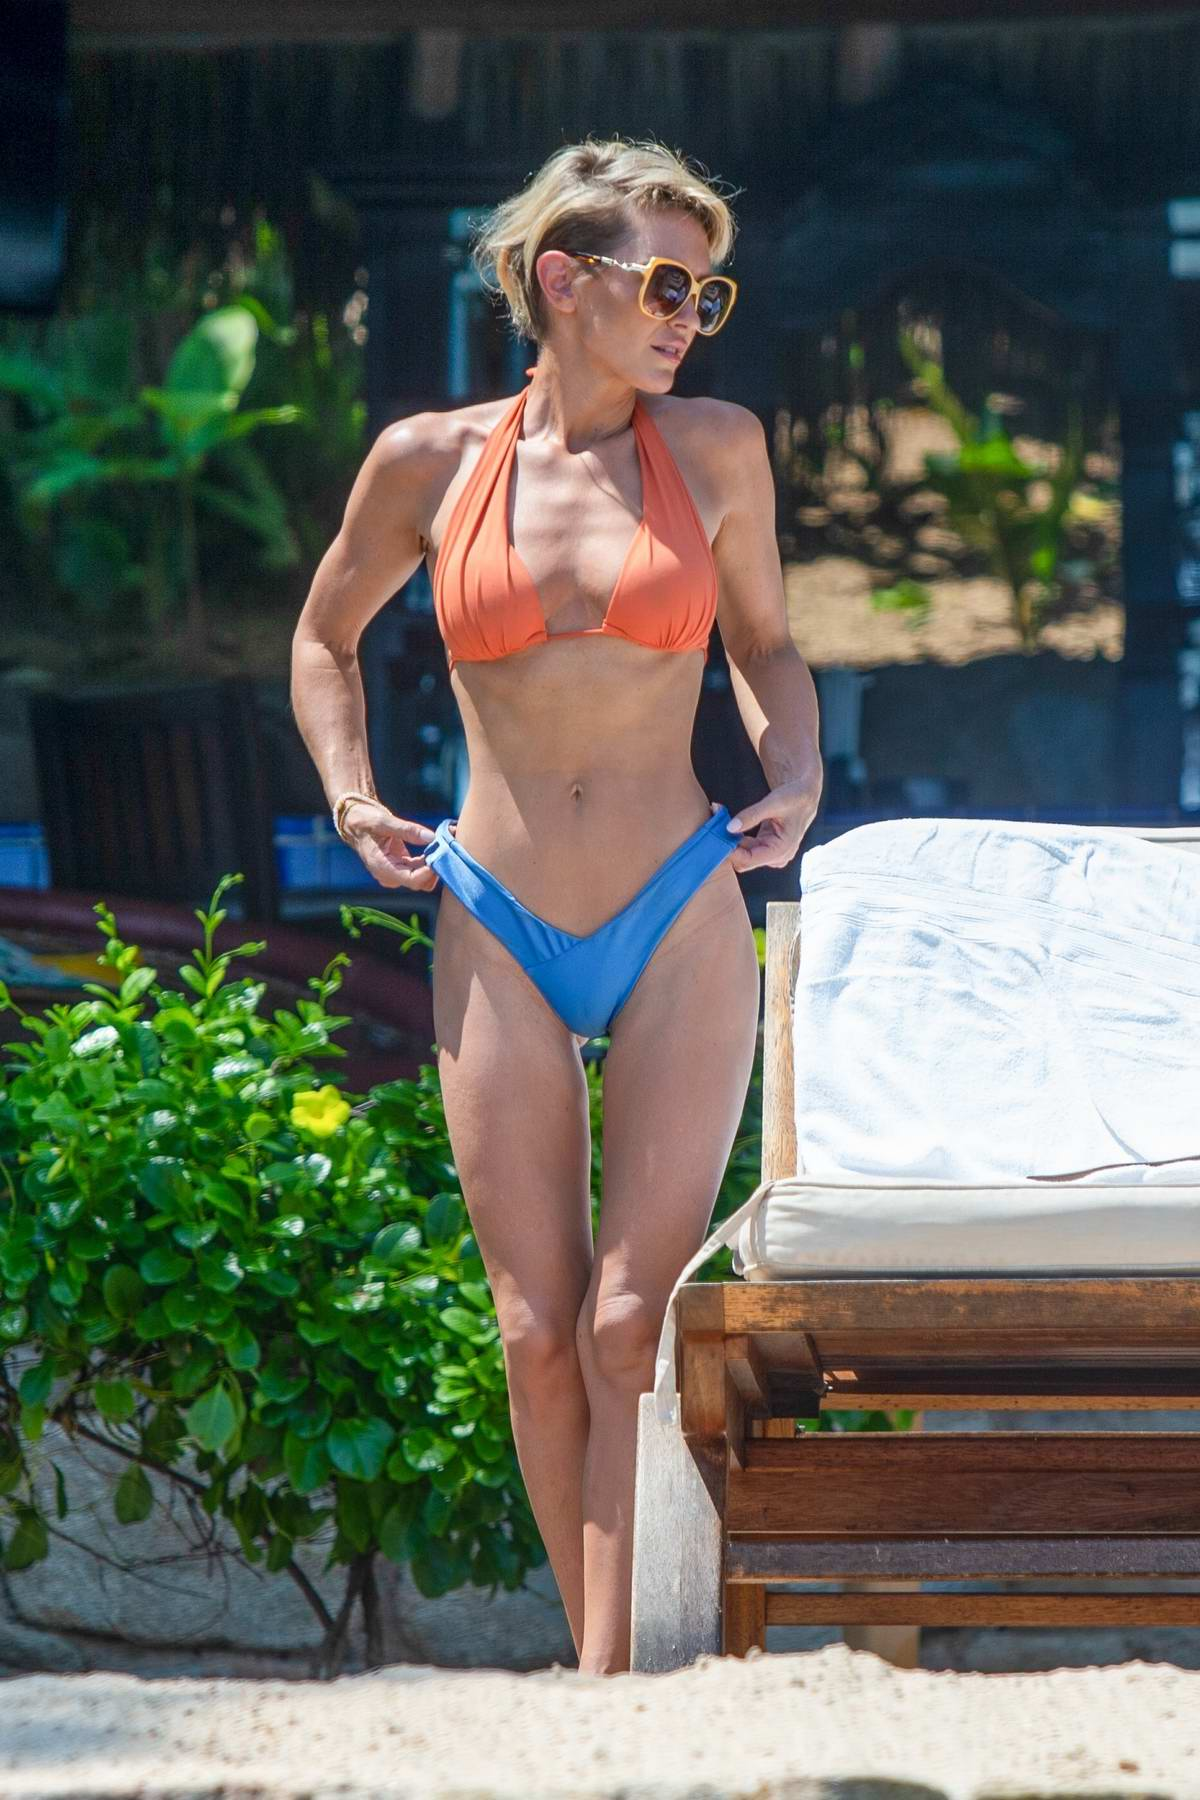 Nicky Whelan shows off her beach body in an orange and blue bikini while on vacation in Puerto Vallarta, Mexico